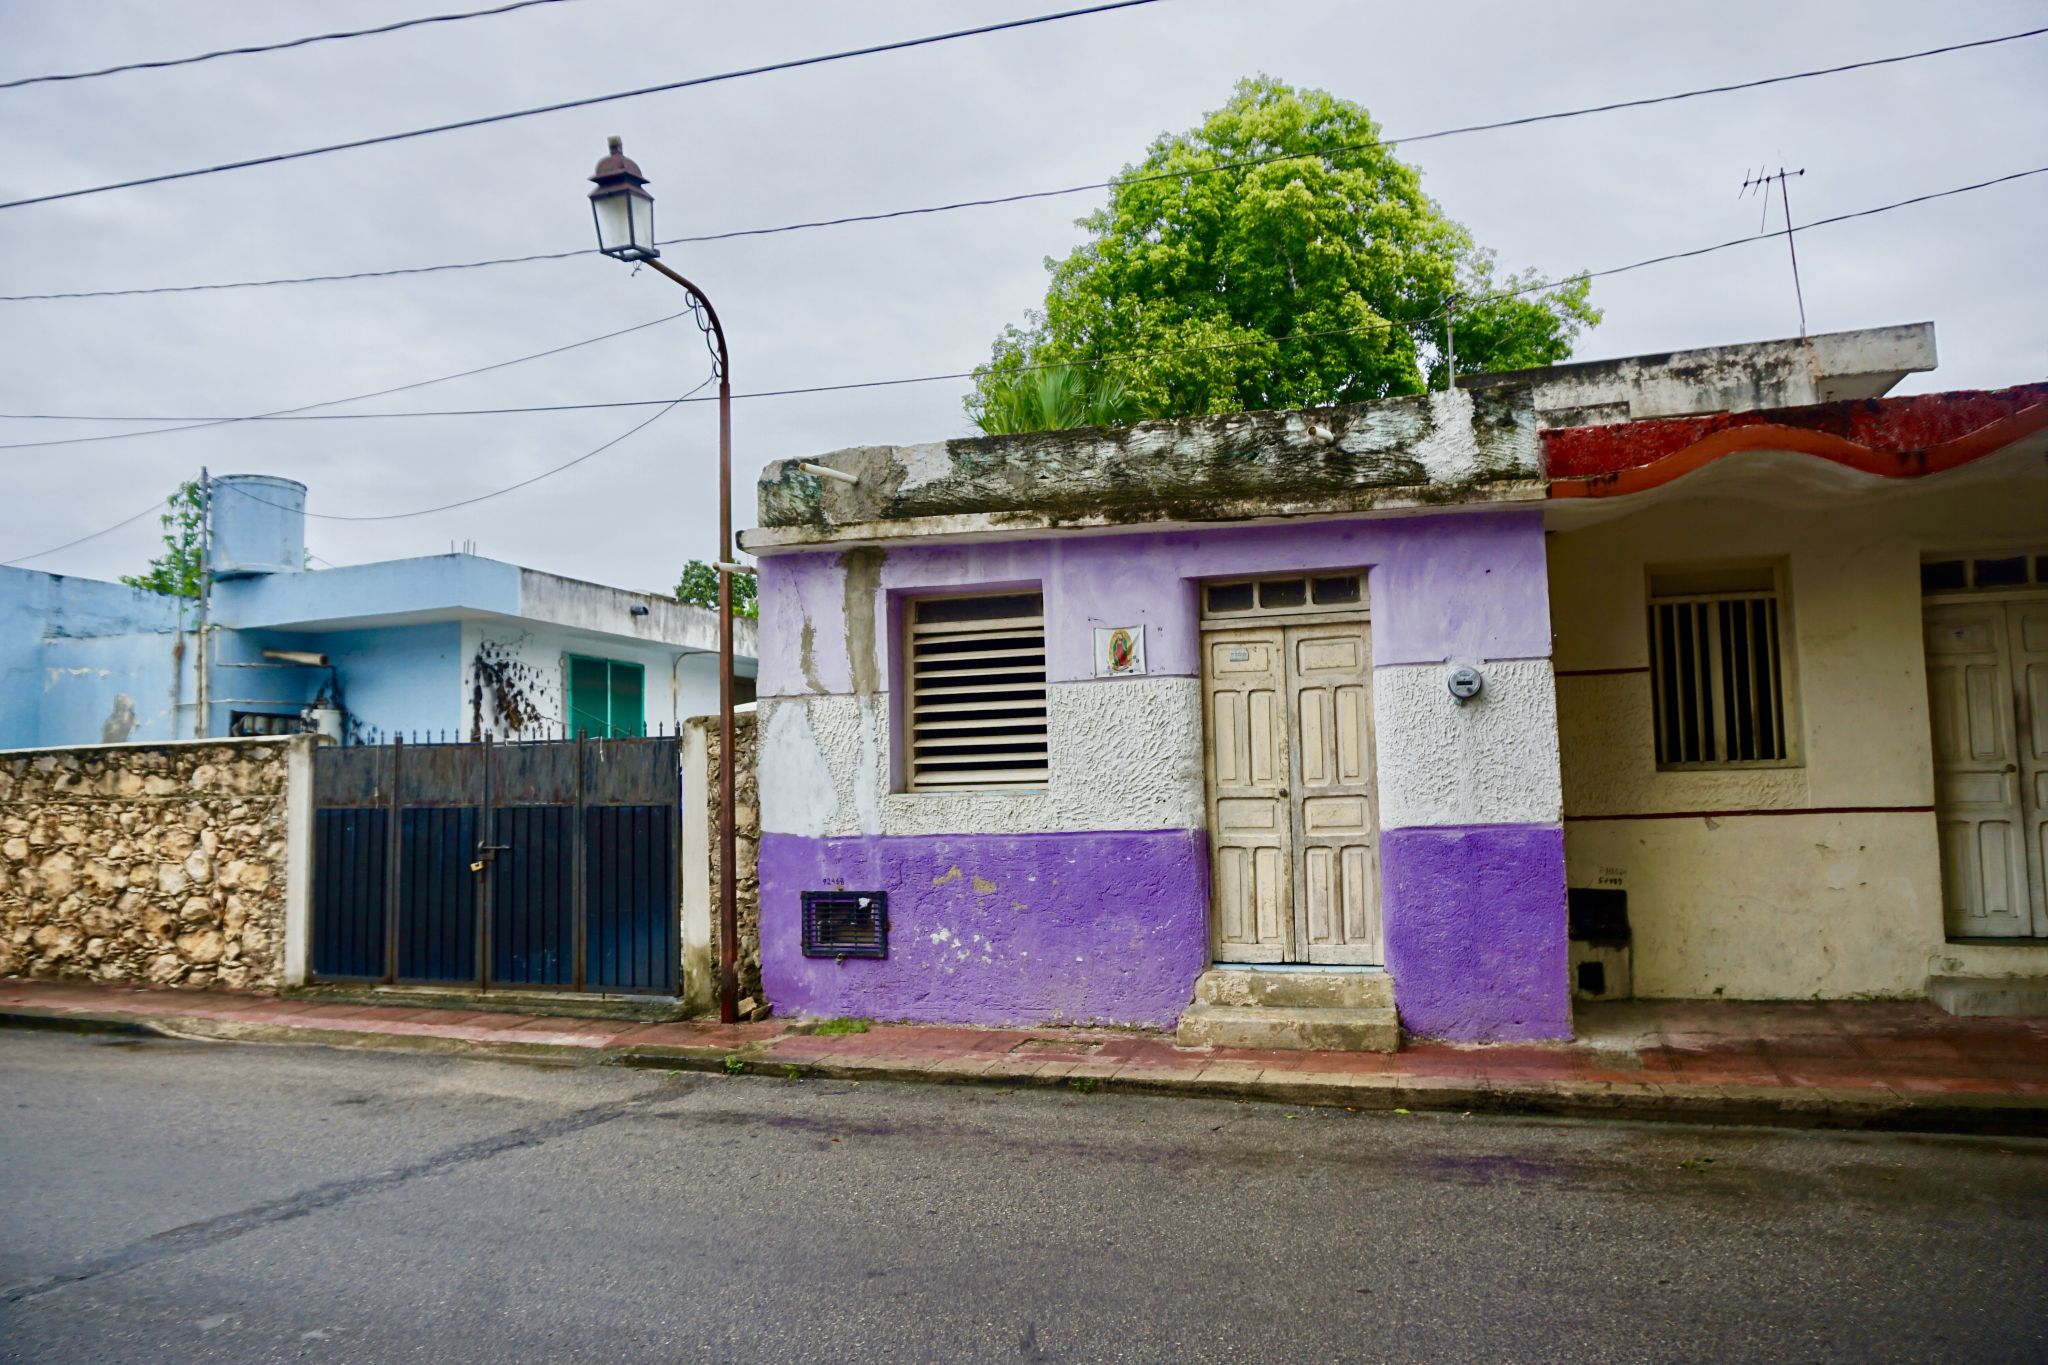 Colourful houses in Valladolid in Mexico